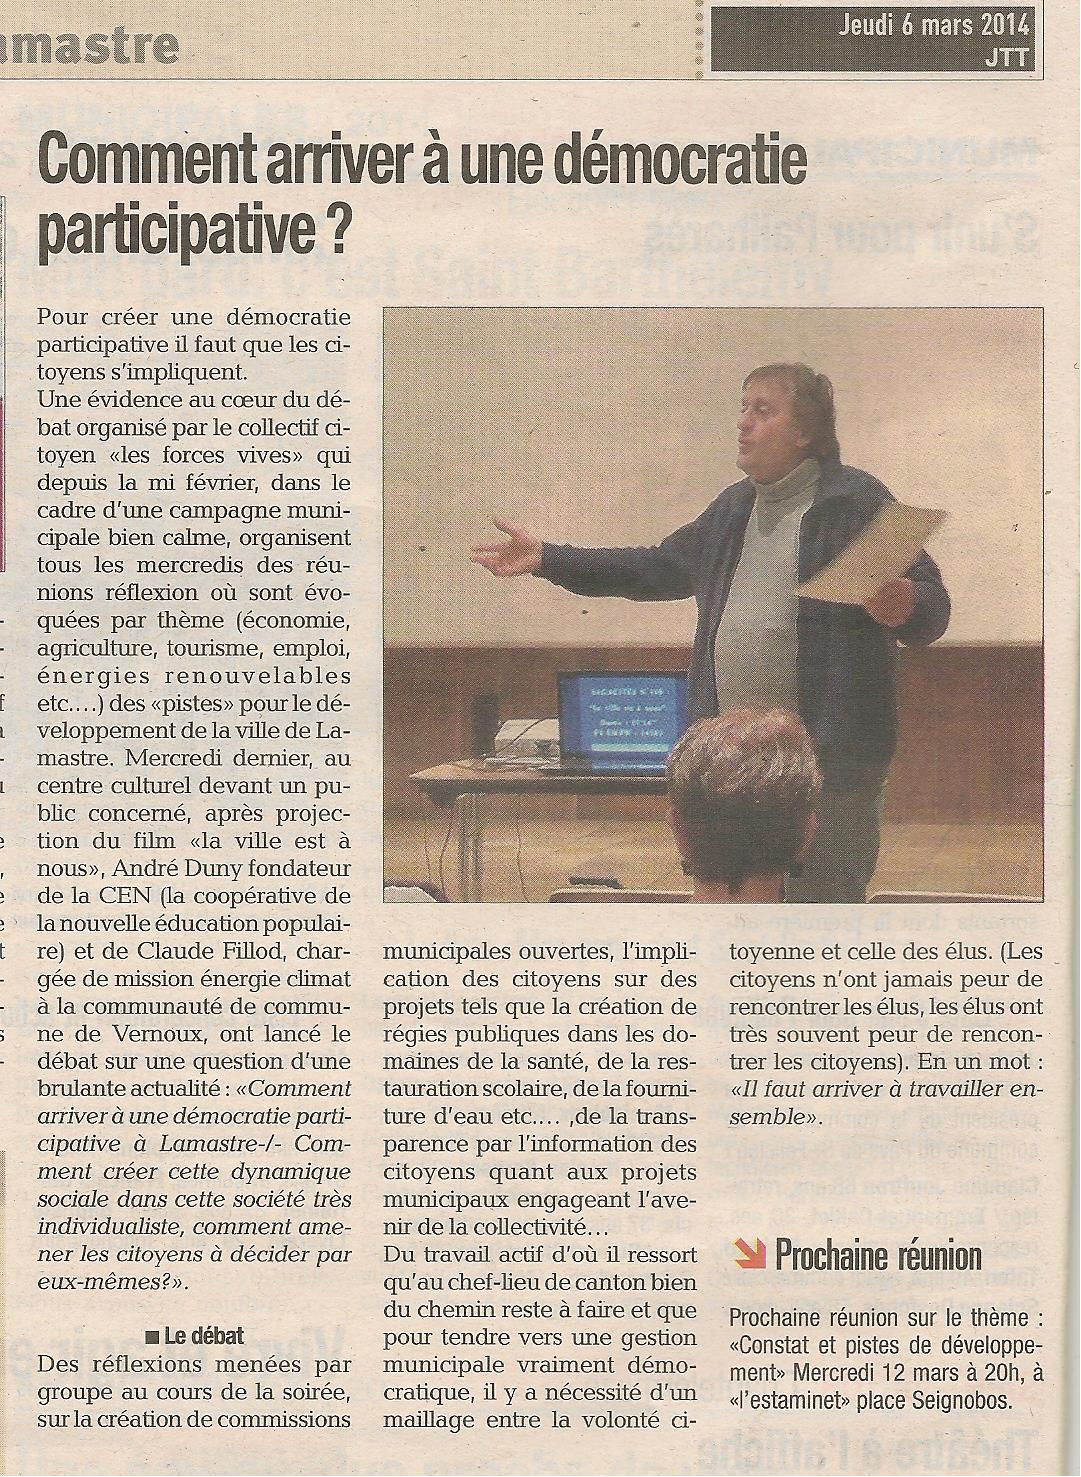 article démocratie participative lamastre  JTT